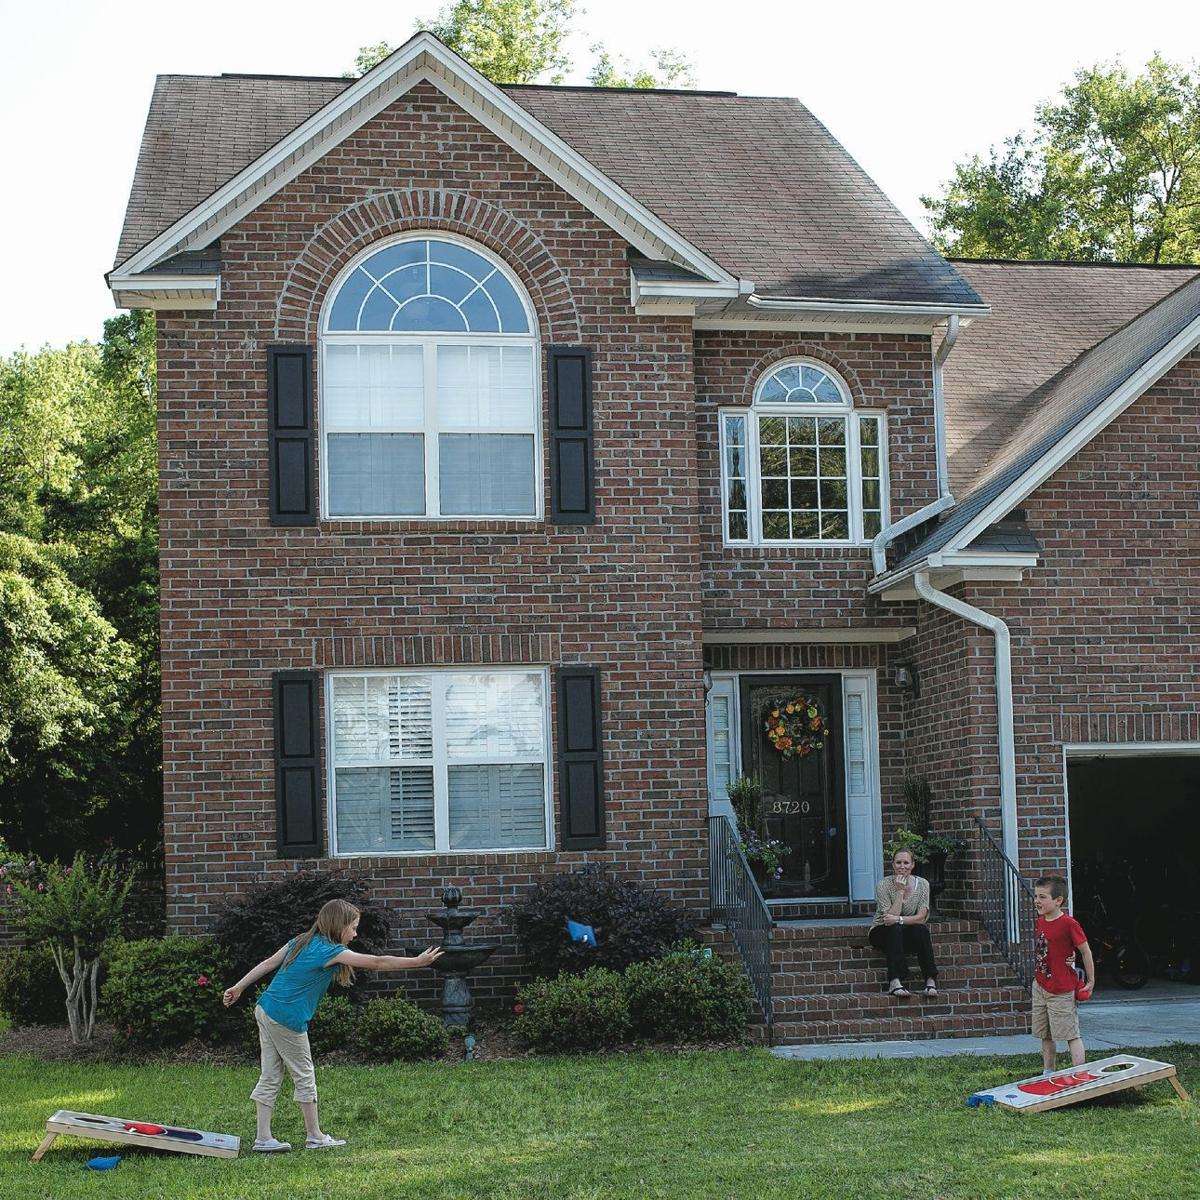 Feeling Grove-y: Contrasting builders frame homes in upscale Dorchester County village near Ashley River